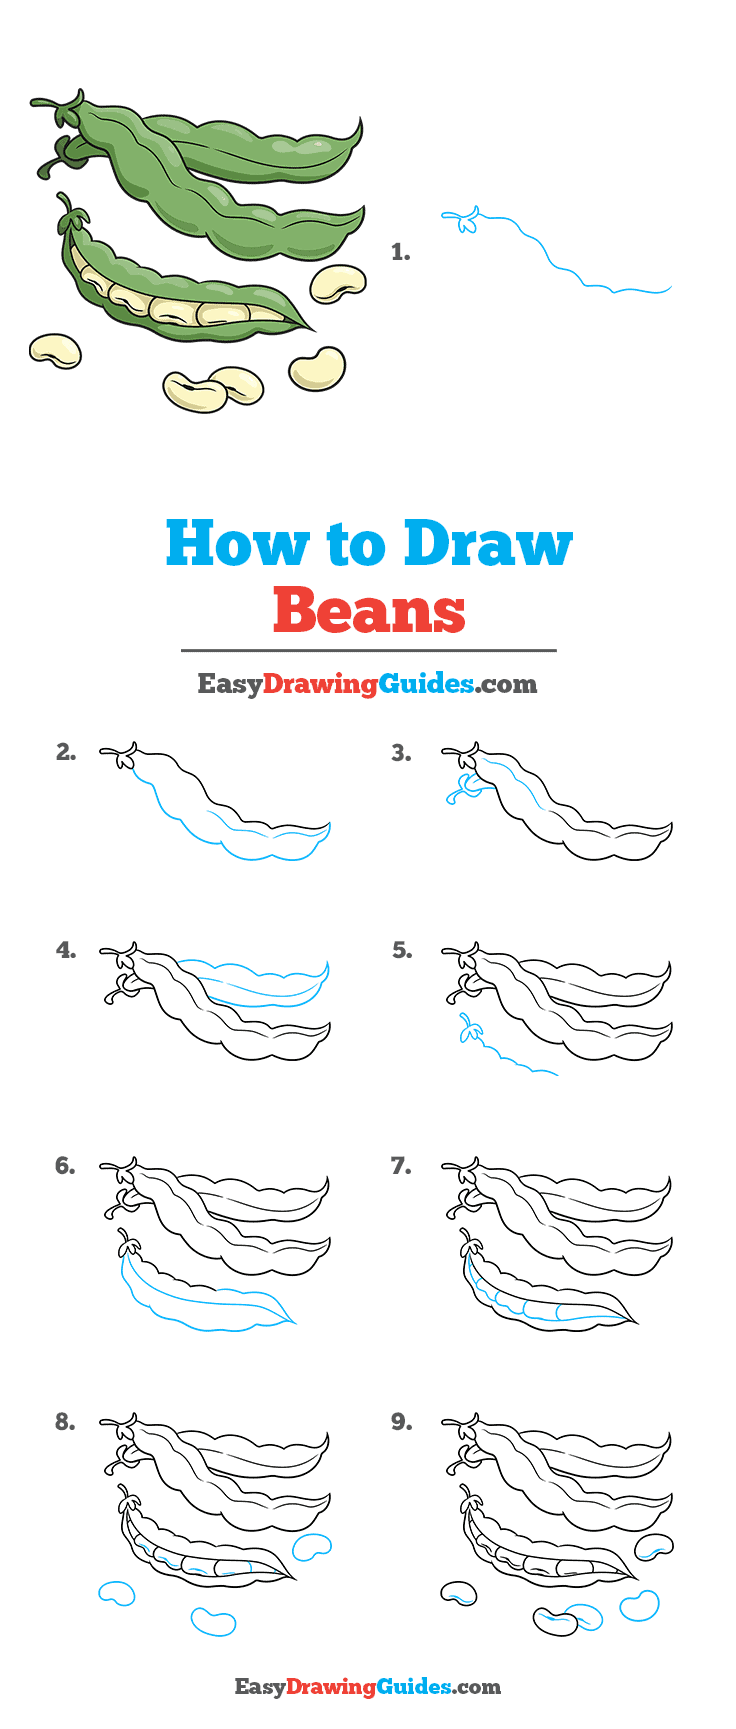 How to Draw a Beans Step by Step Tutorial Image